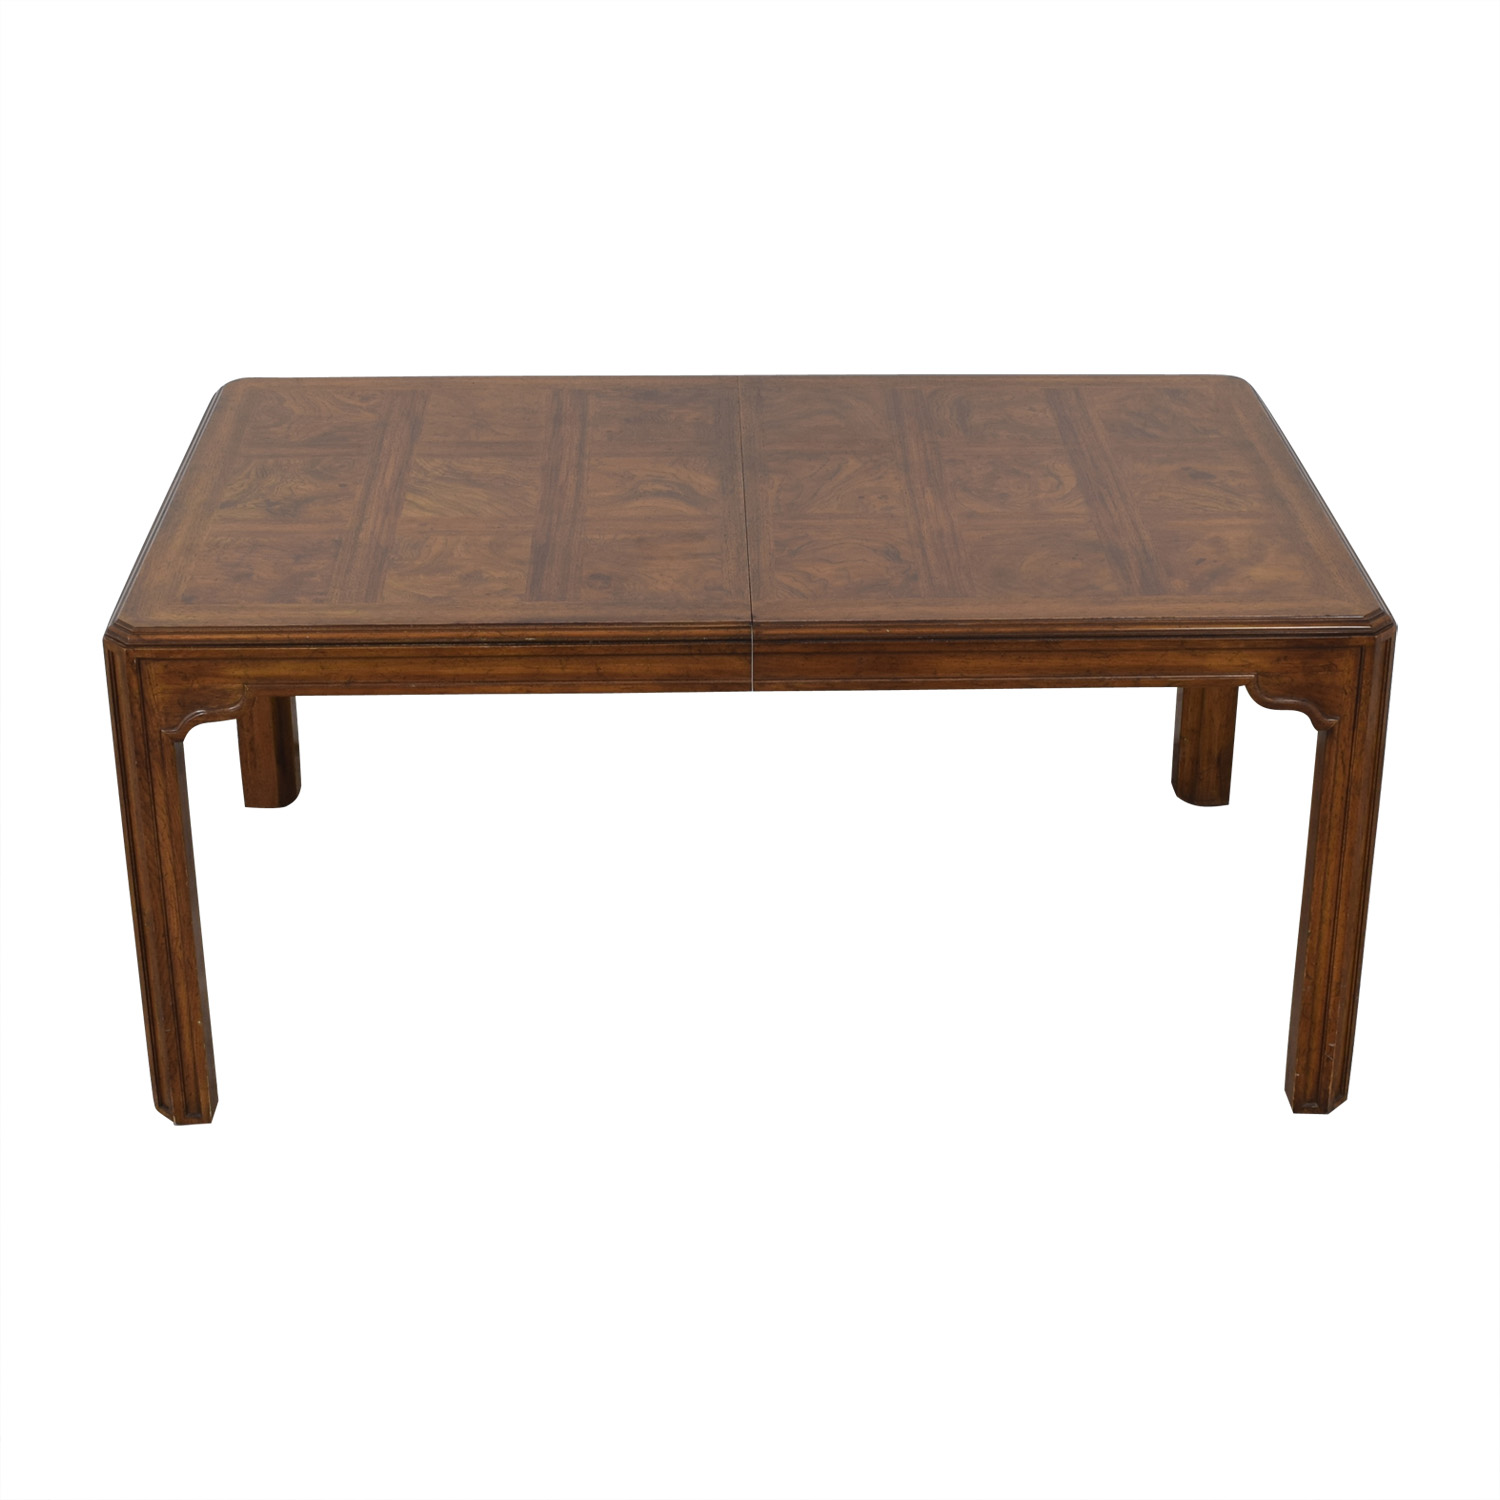 Drexel Heritage Drexel Heritage Extension Dining Table nj